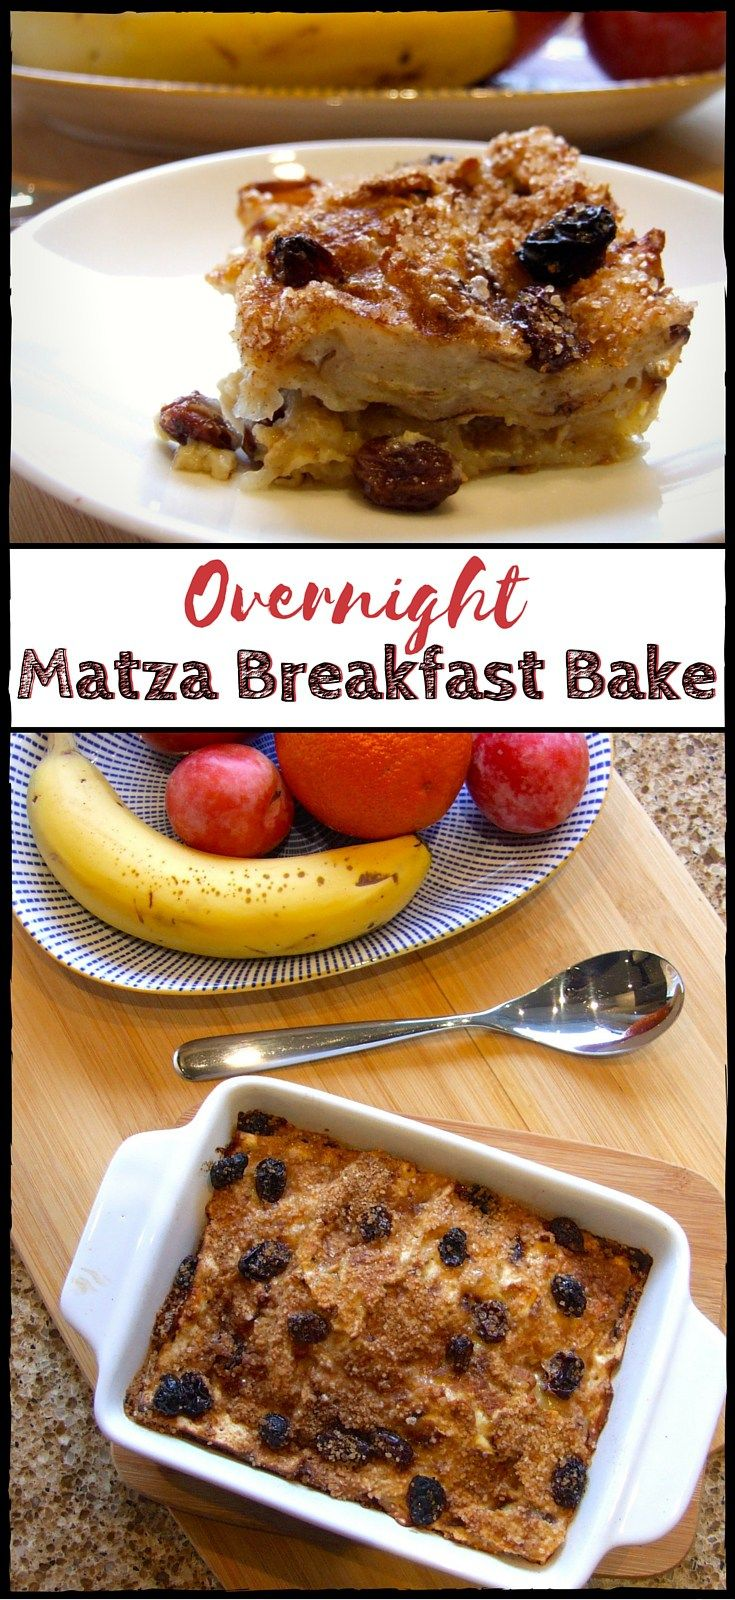 This delicious breakfast bake has a light, custardy texture & a sweet & subtle matza flavour. With raisins & cinnamon for extra yumminess, it's a great start to the day!